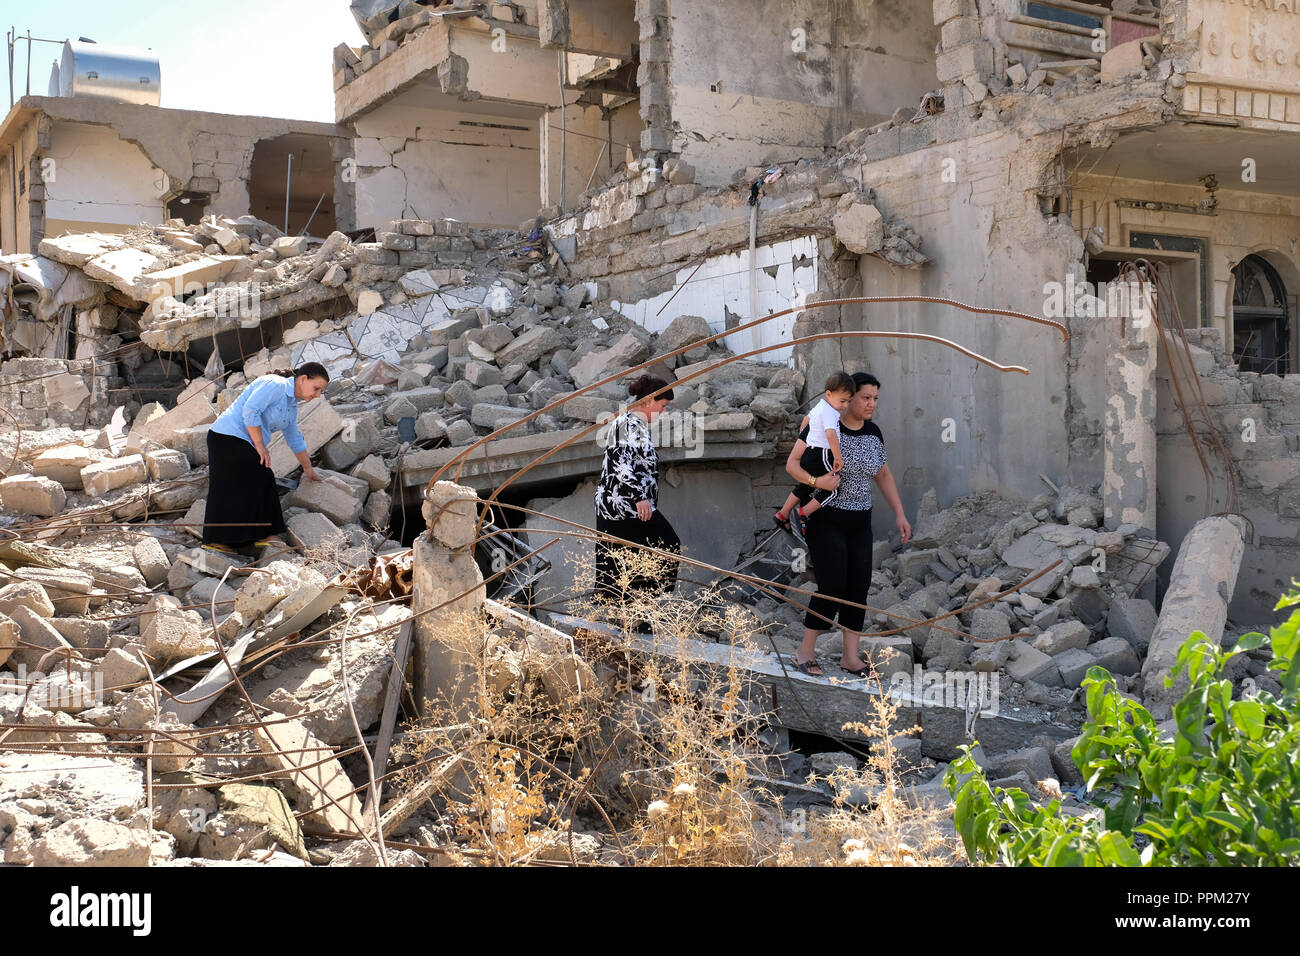 Family members in the rubble of a house destroyed by bombing in the war against ISIS in Bashiqua, northern Iraq, Kurdistan - Stock Image